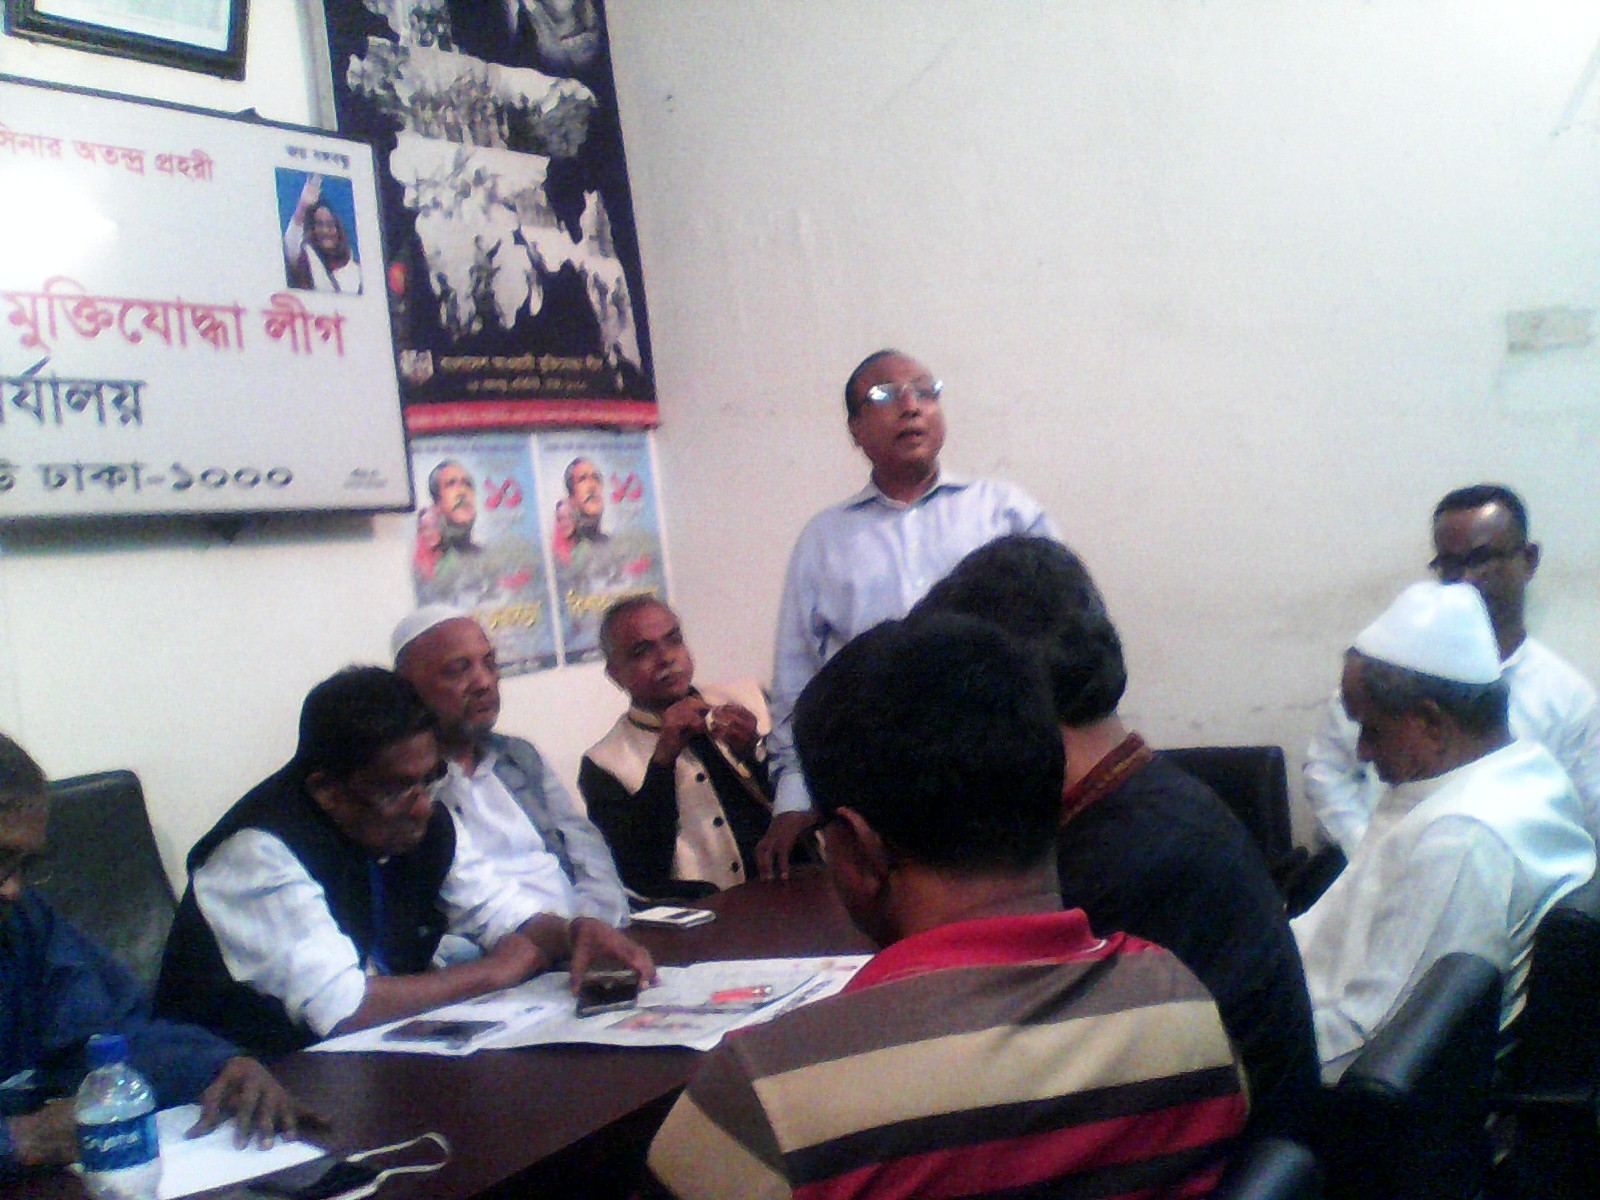 Ali Ahmed Chowdhury is seen to deliver his speech